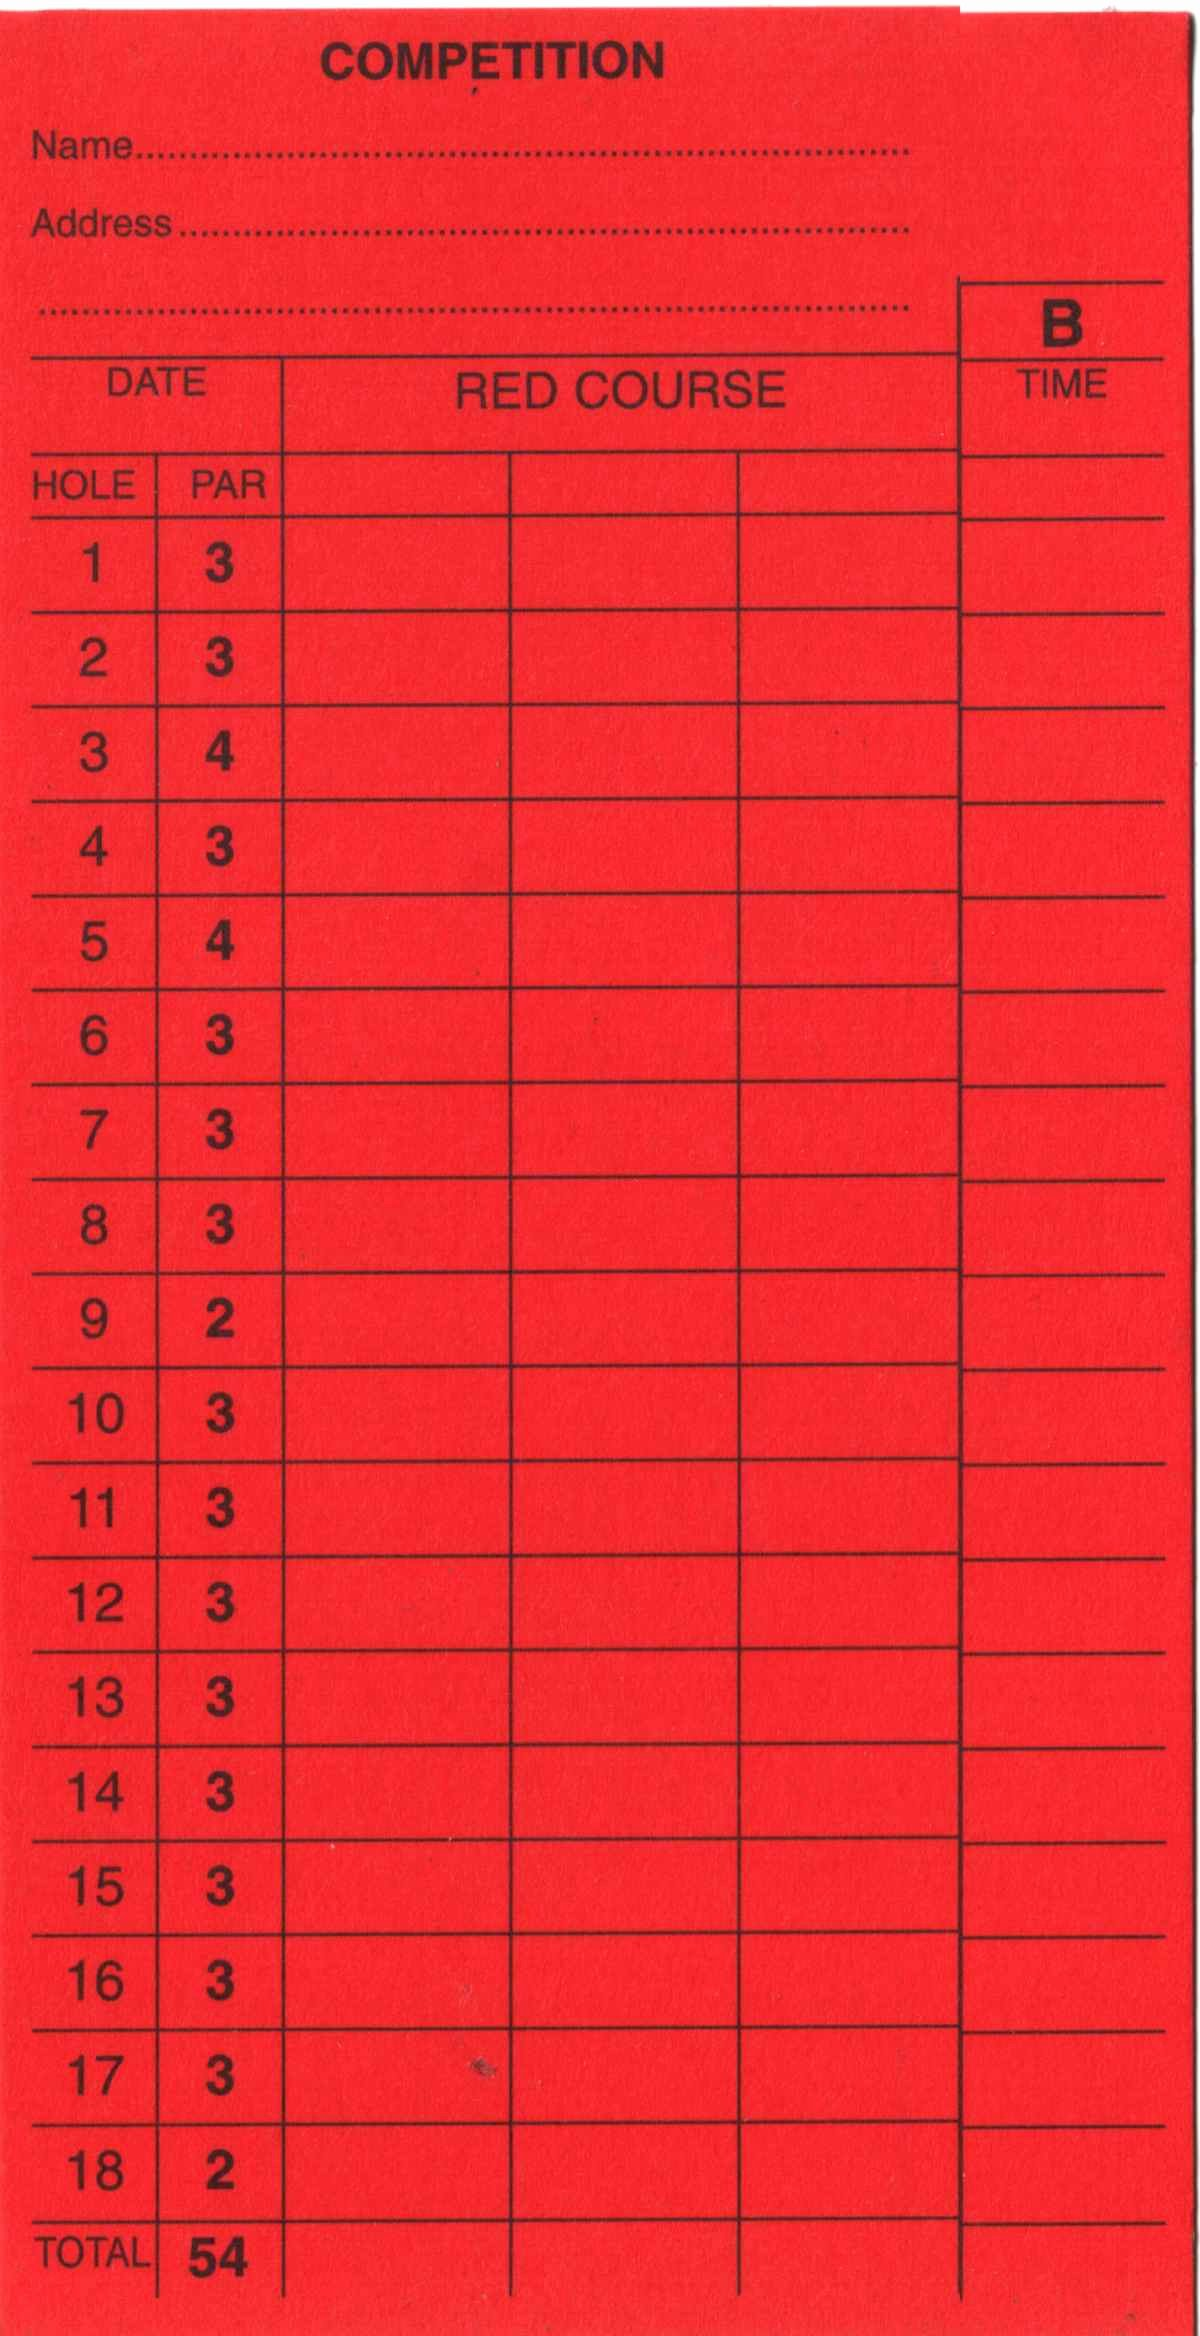 Mini Golf Score Card Best Of Score Cards Of Crazy Golf Miniature Golf and Adventure